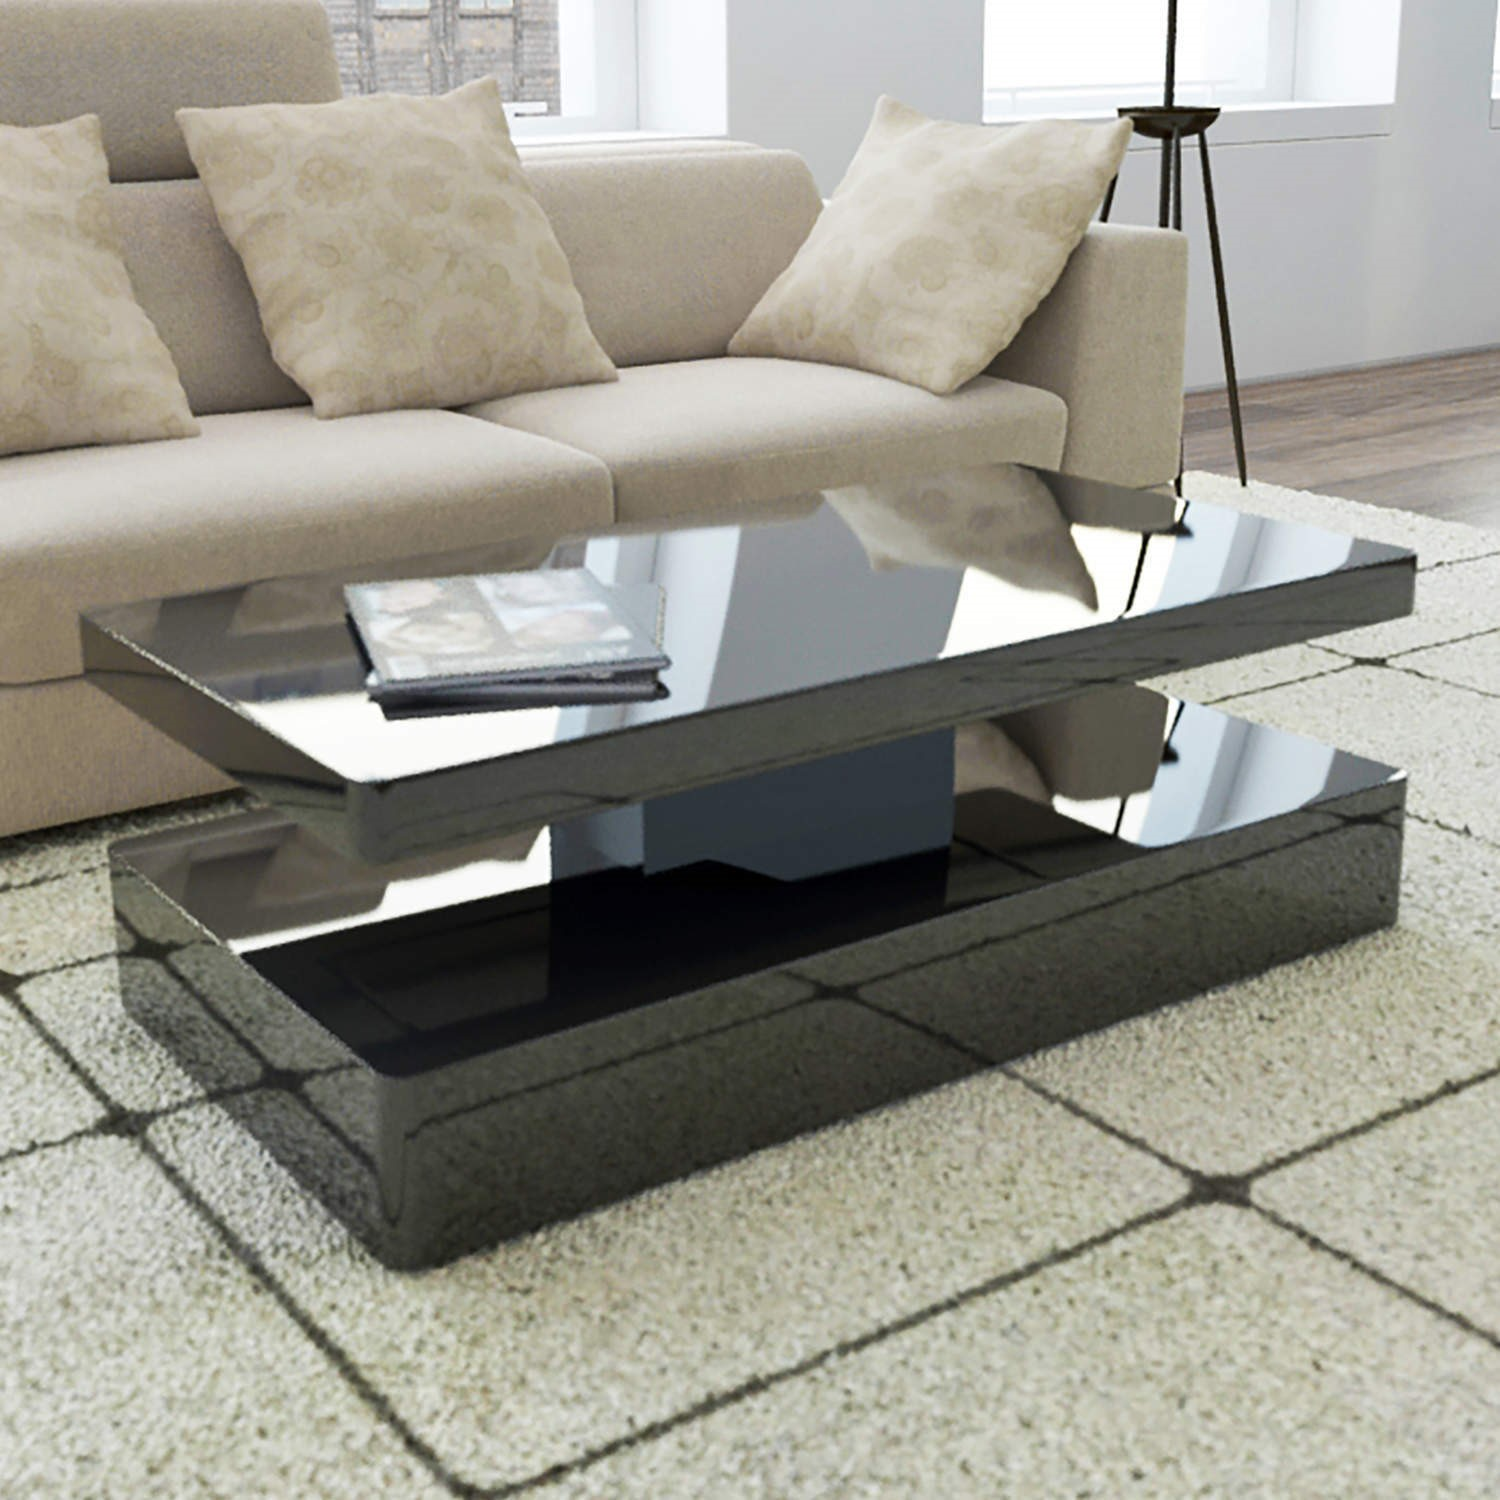 tiffany black high gloss rectangular coffee table with led lighting